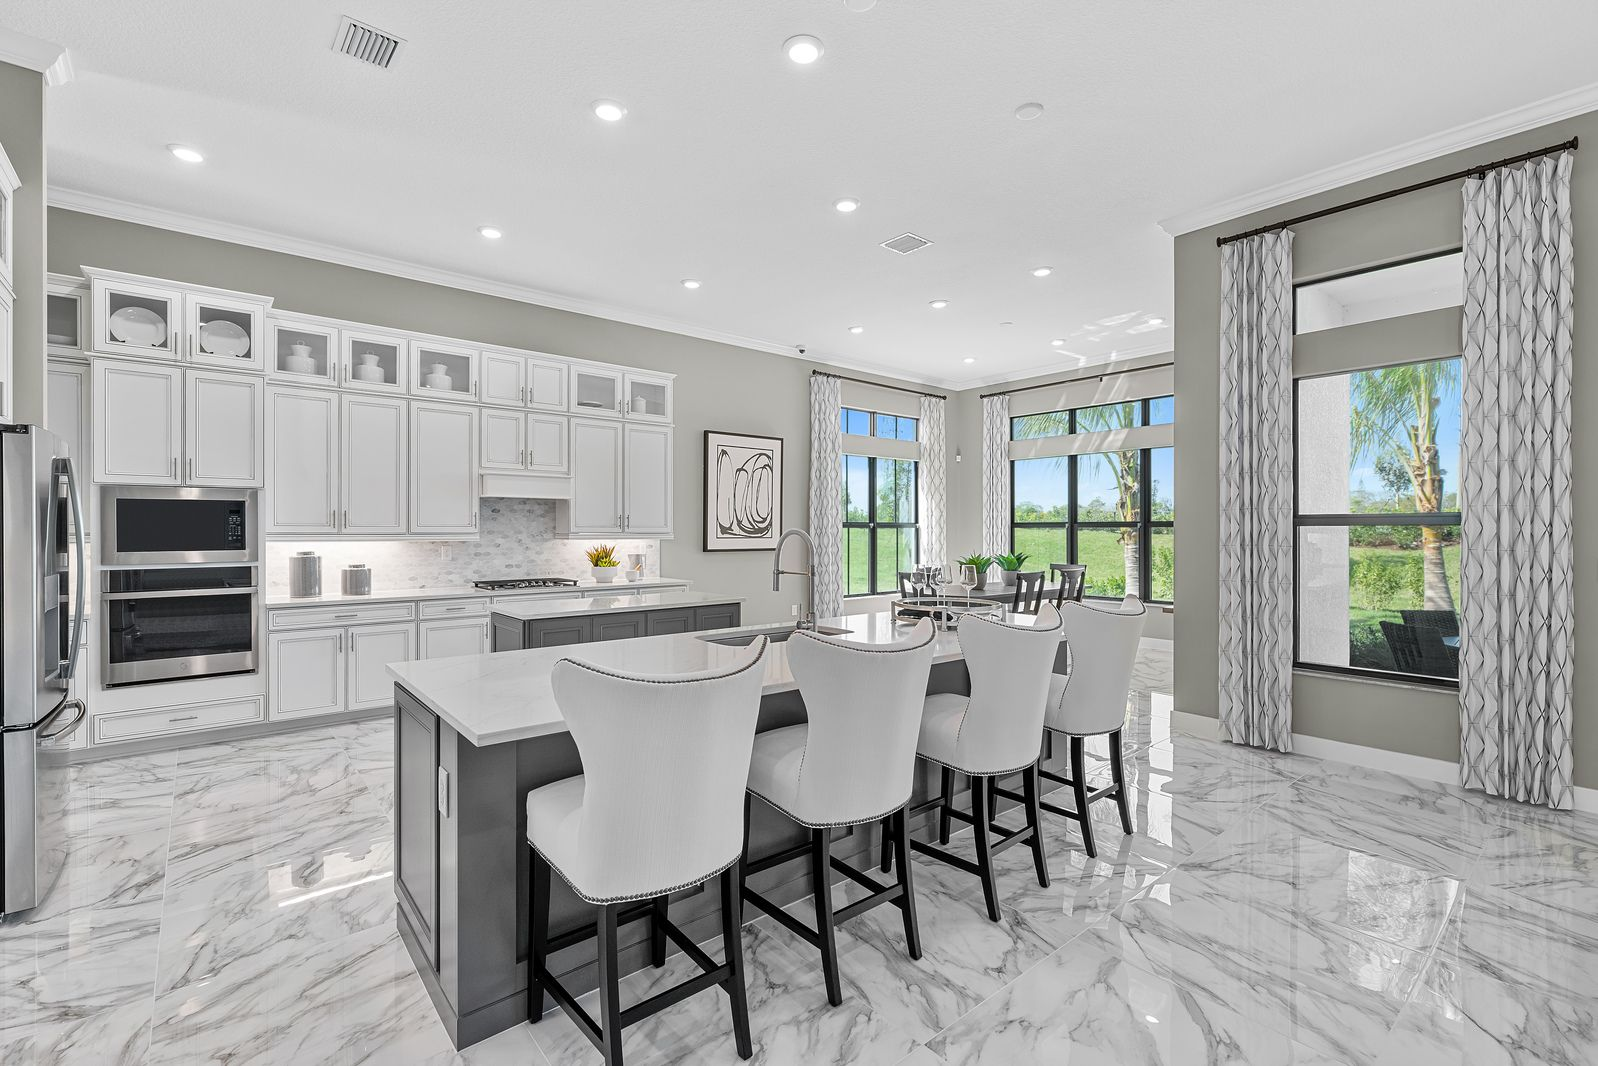 Kitchen featured in the Islamorada- The Vanderbilt Collection By Ryan Homes